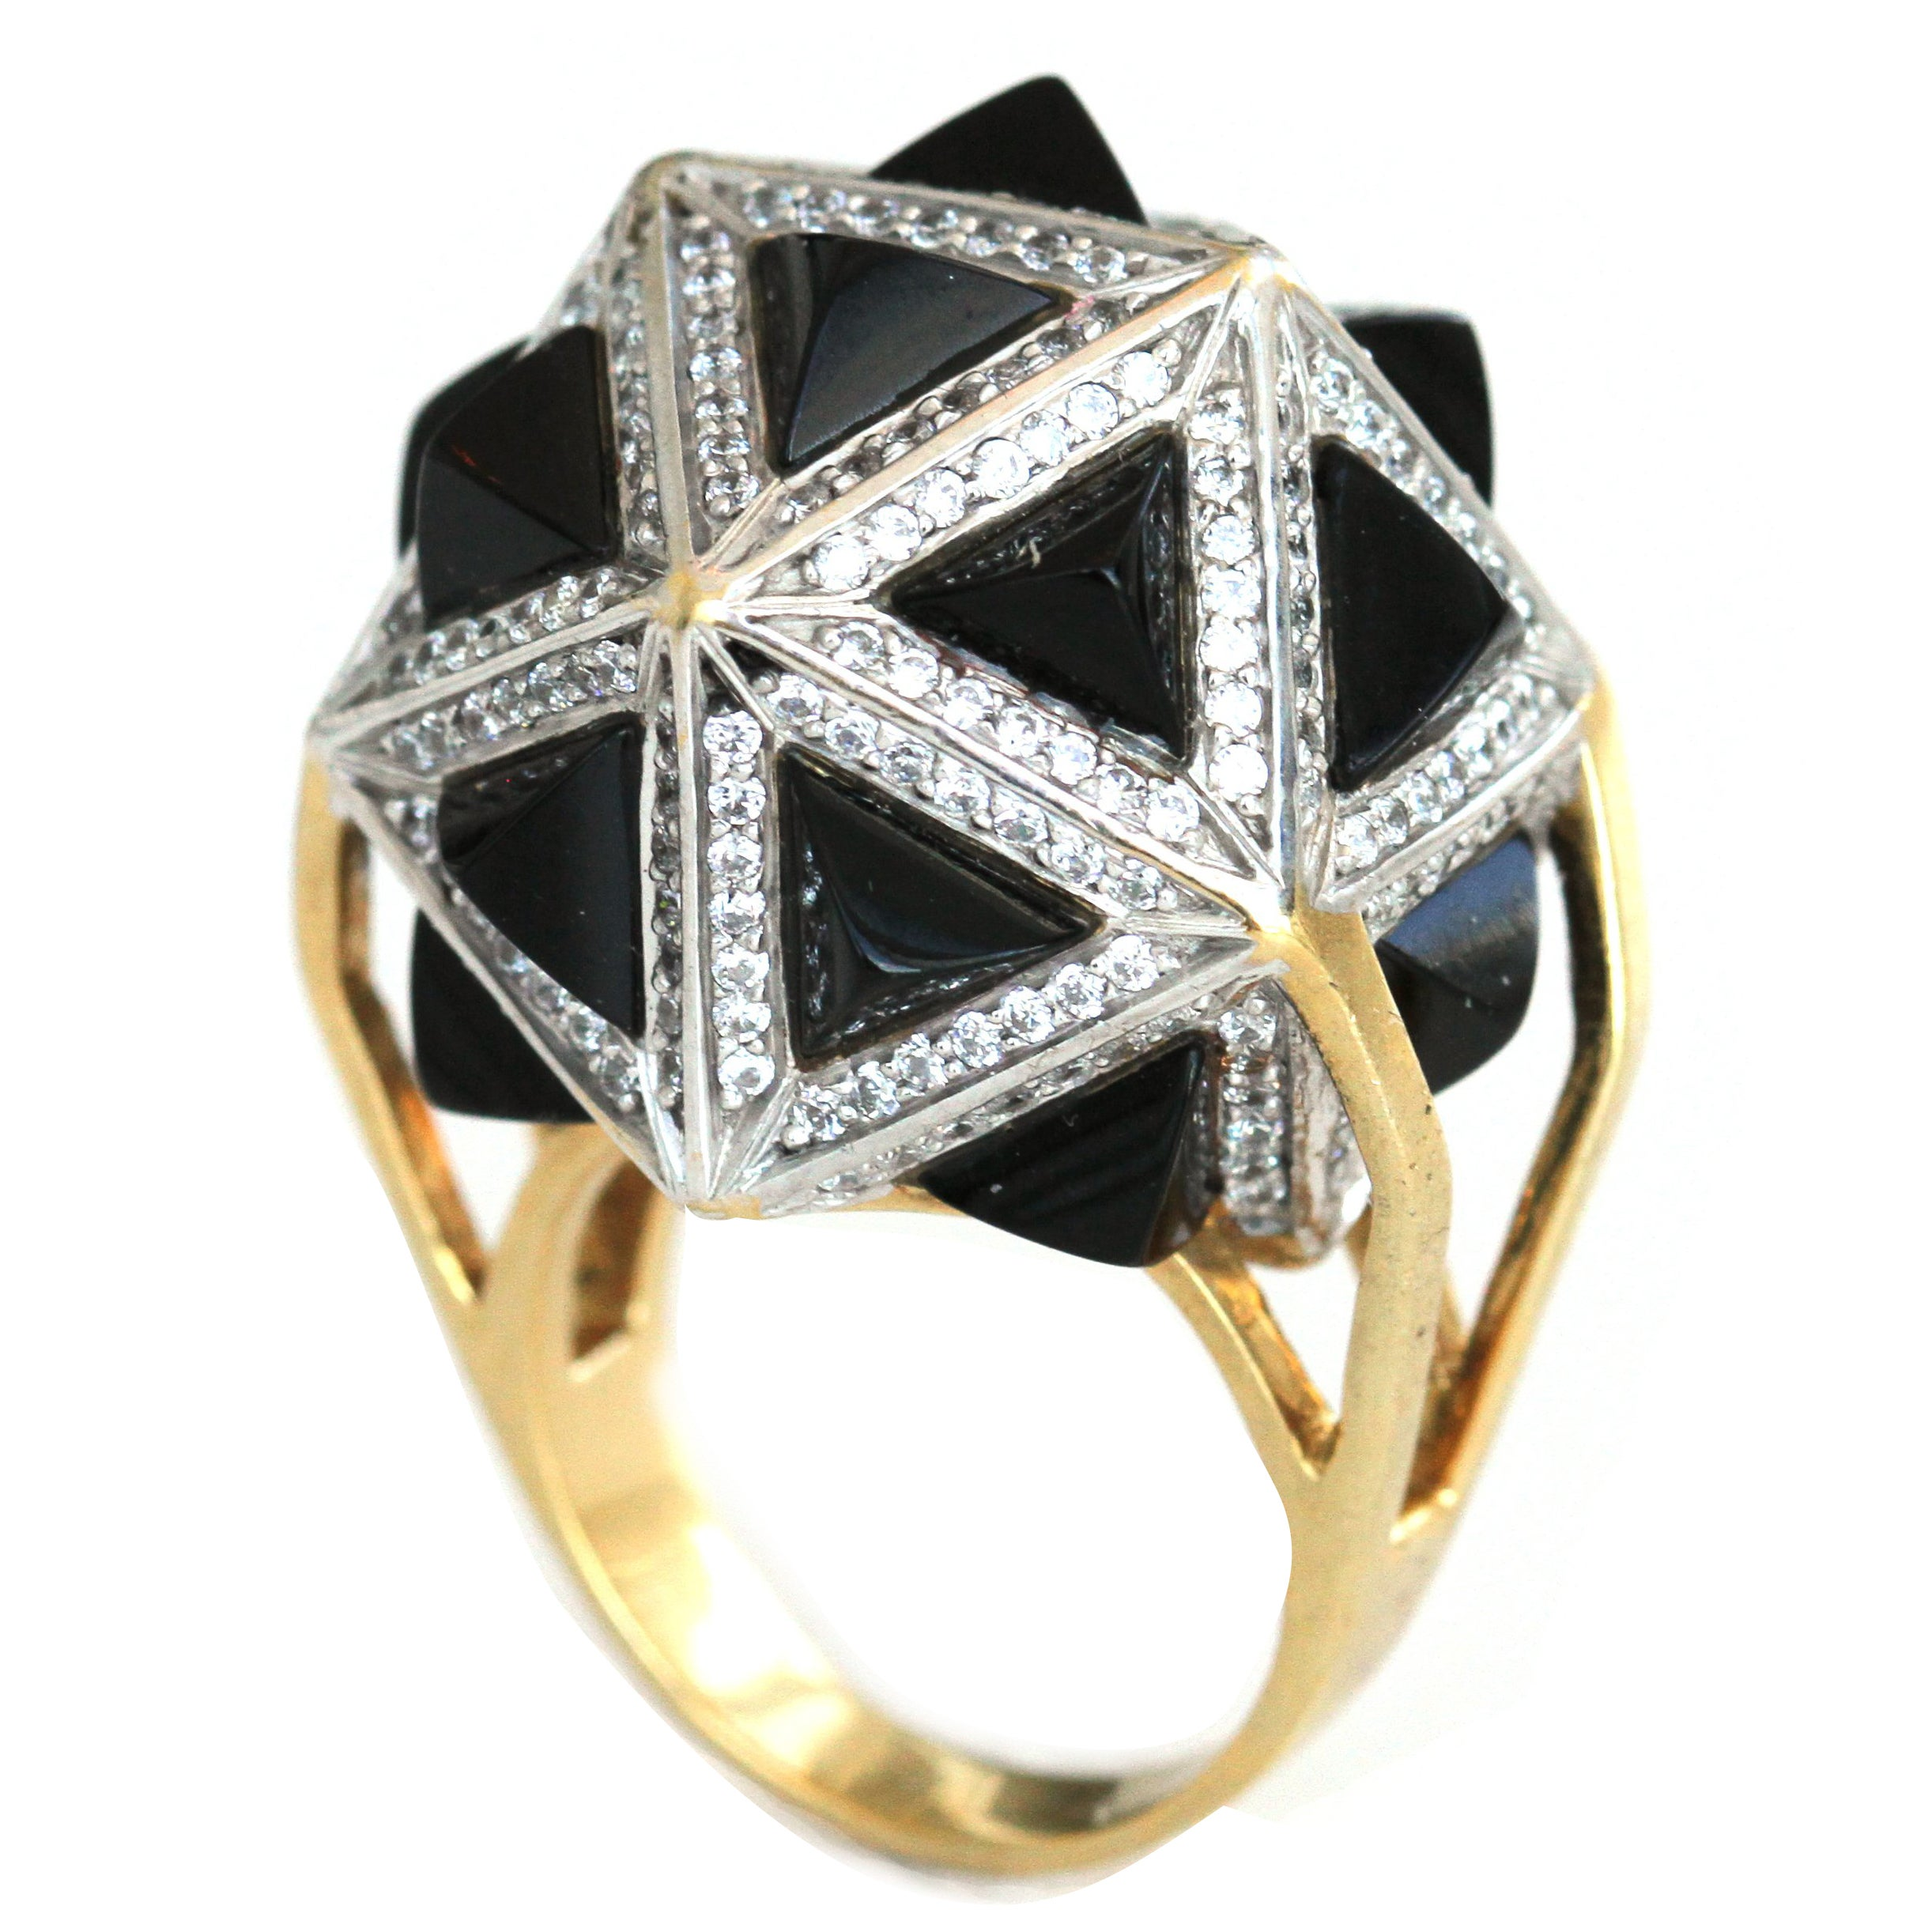 John Brevard One of a Kind White Diamond Black Sapphire Pyramids Gold Ring